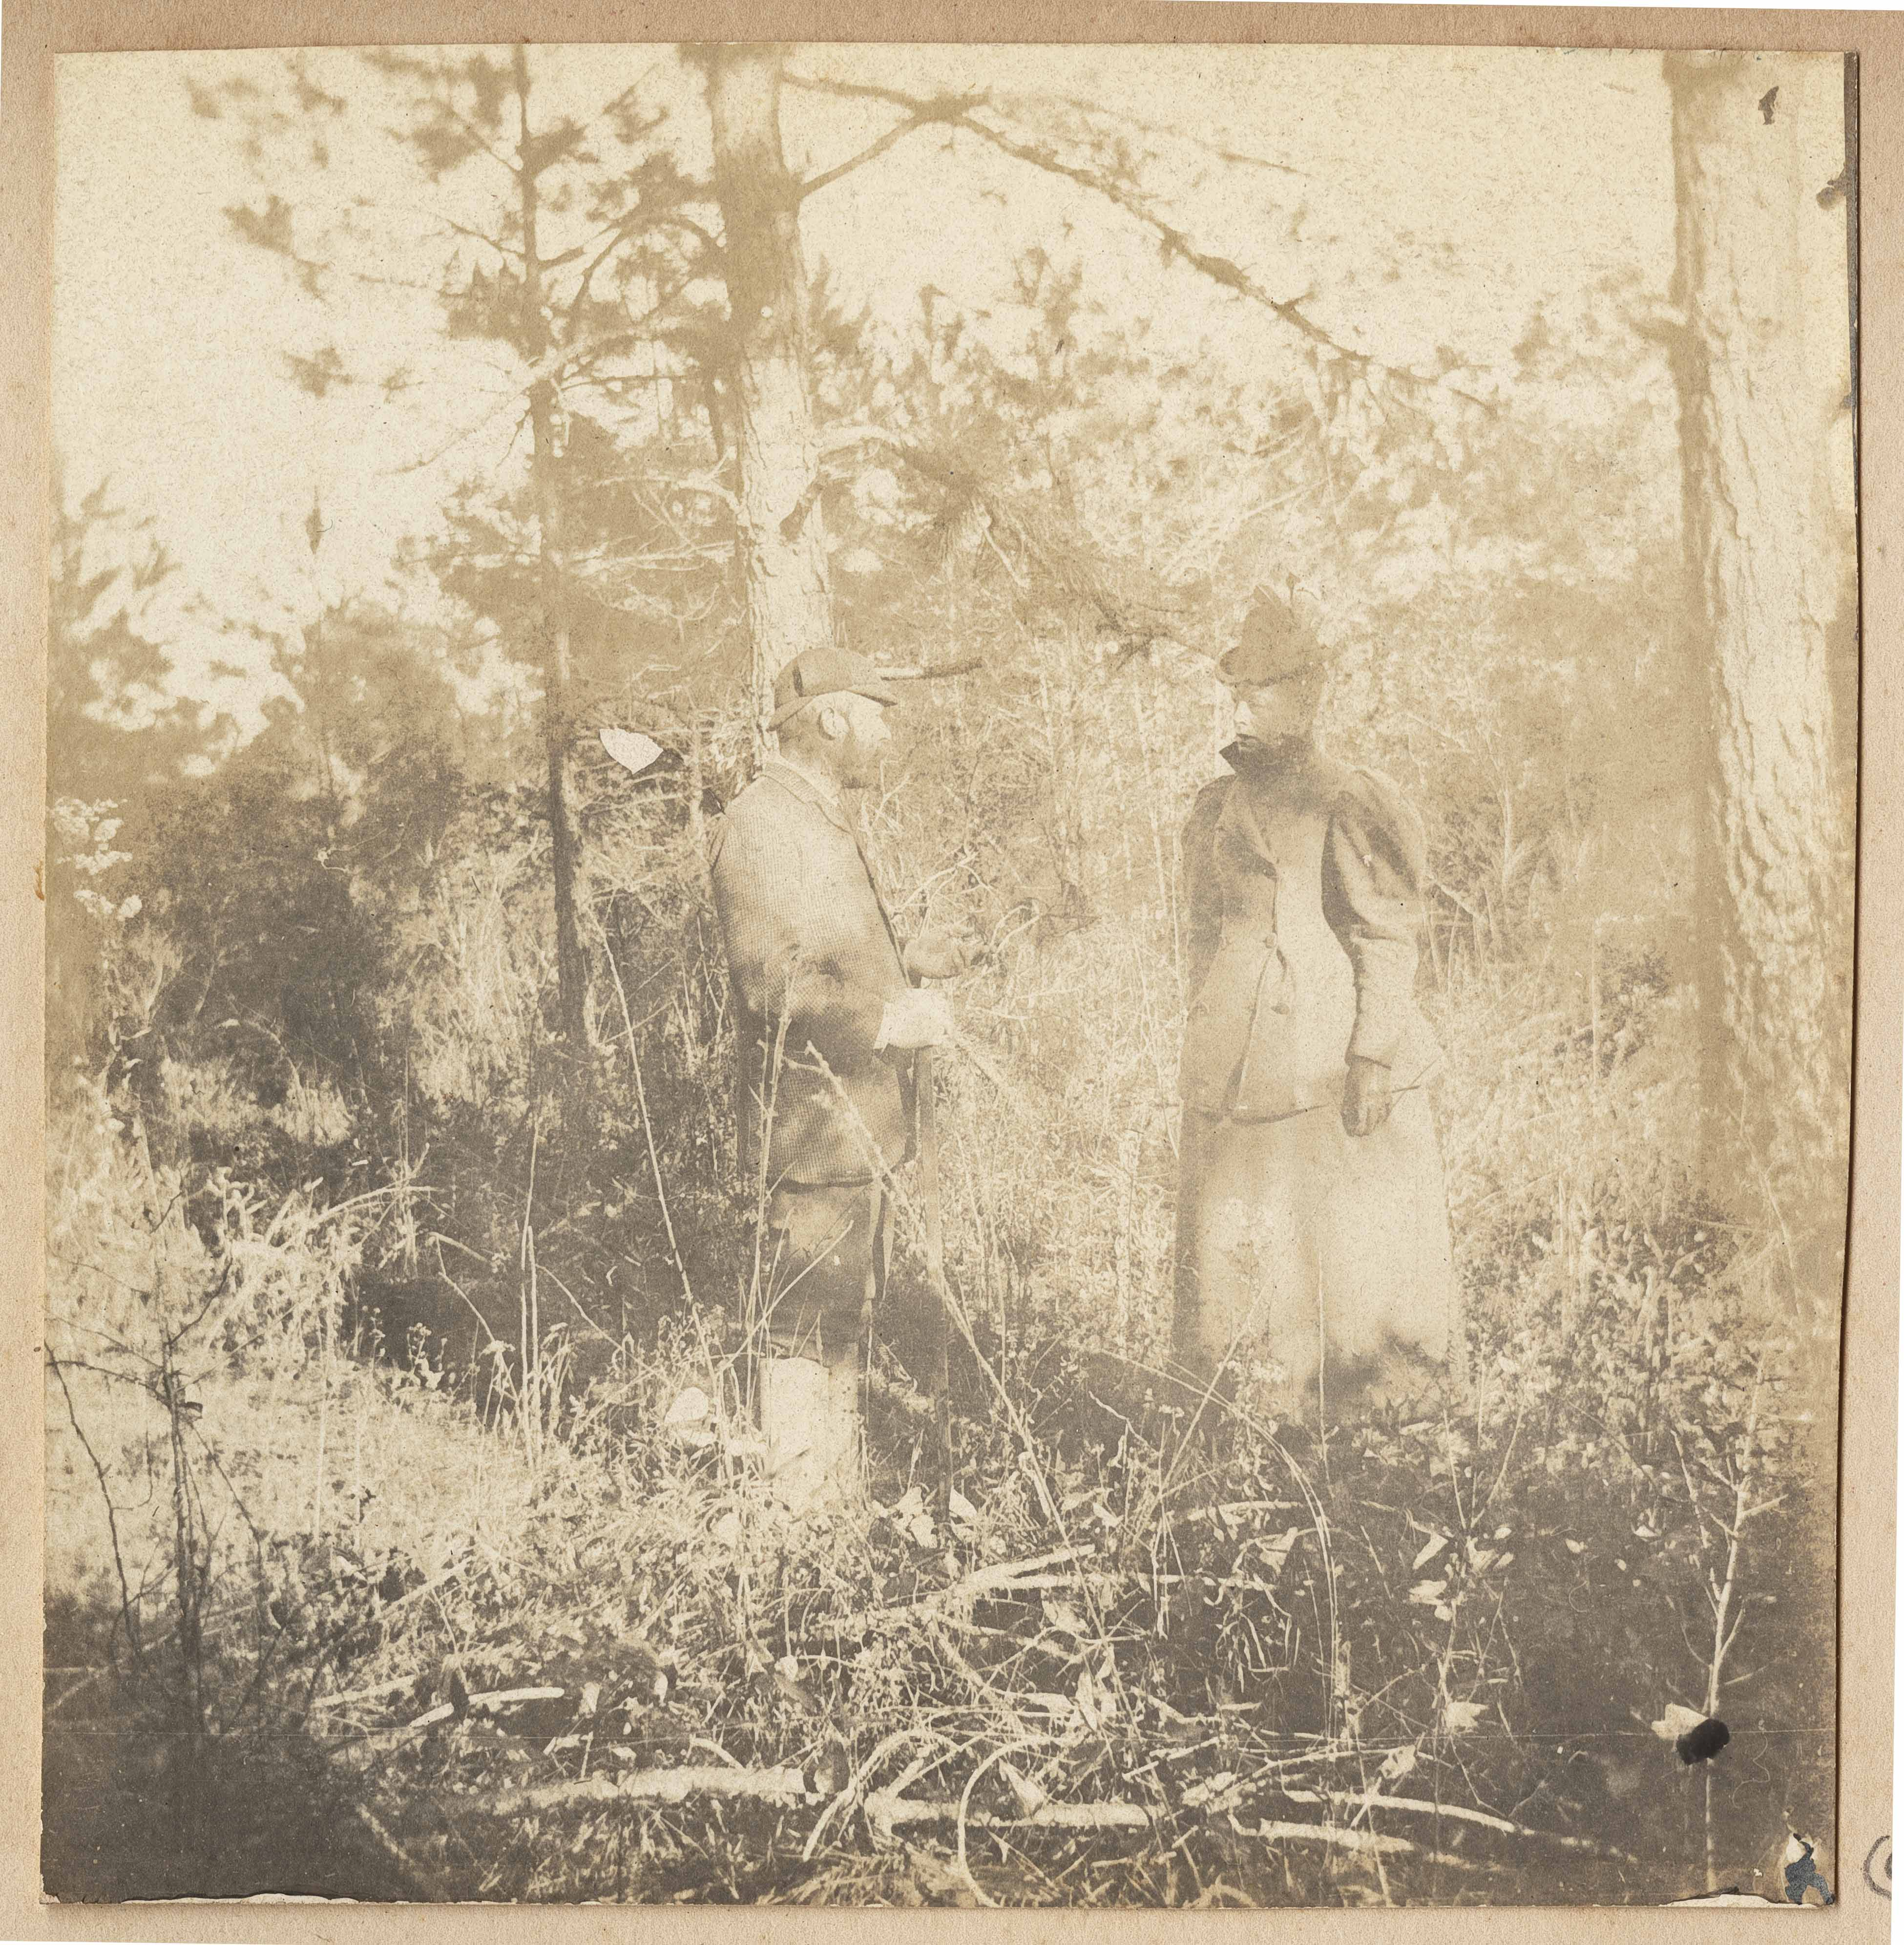 Conrad Donner and Pauline Donner in woodland setting